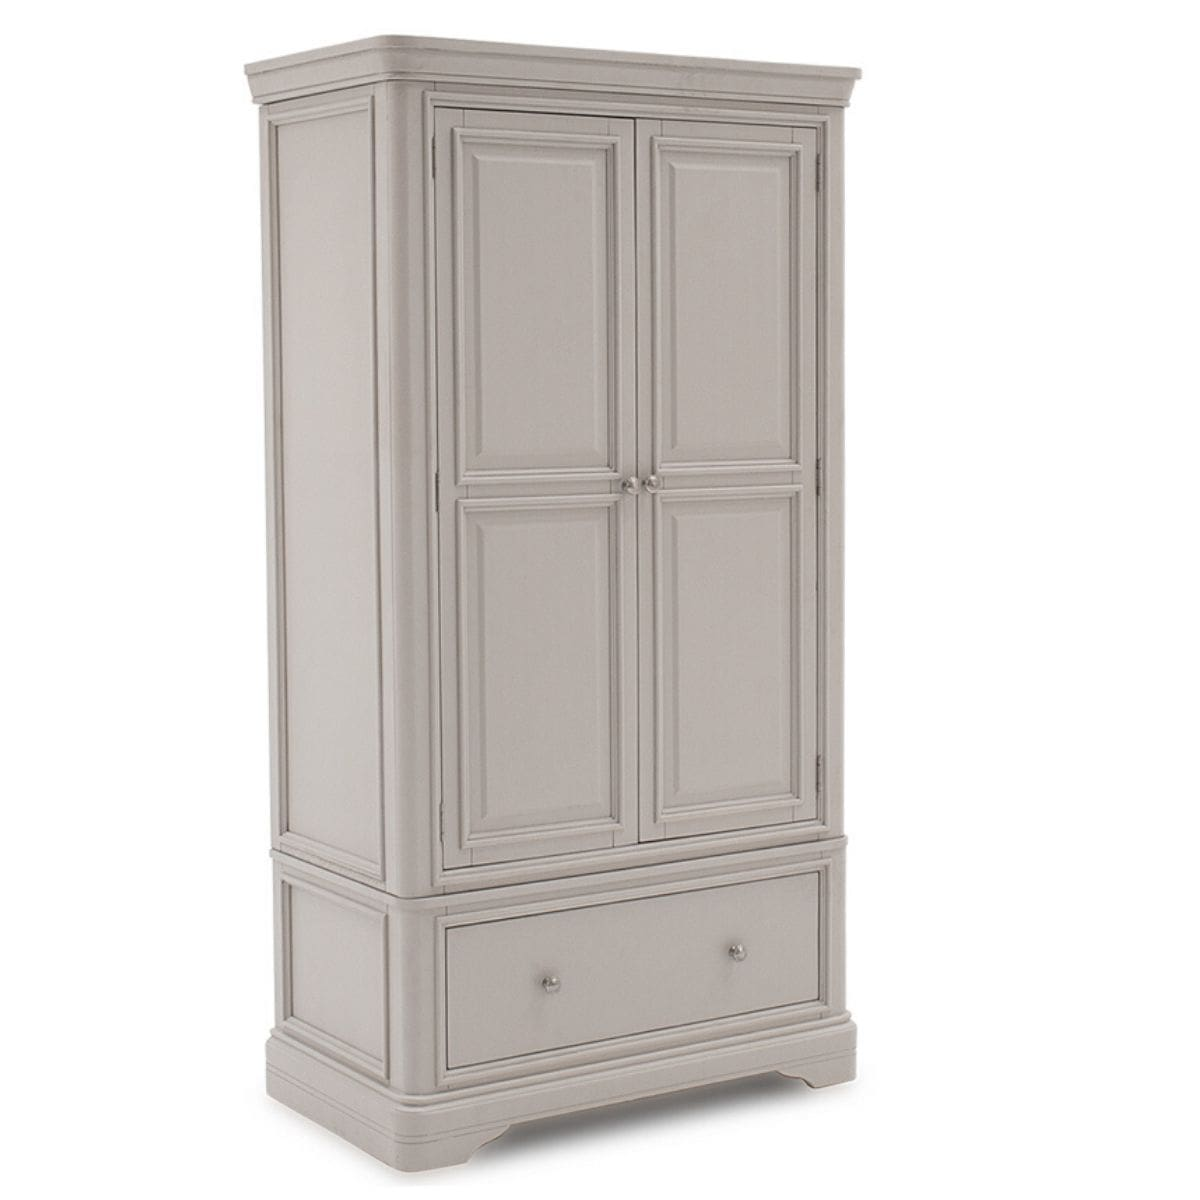 Mika 2 Door 1 Drawer Wardrobe